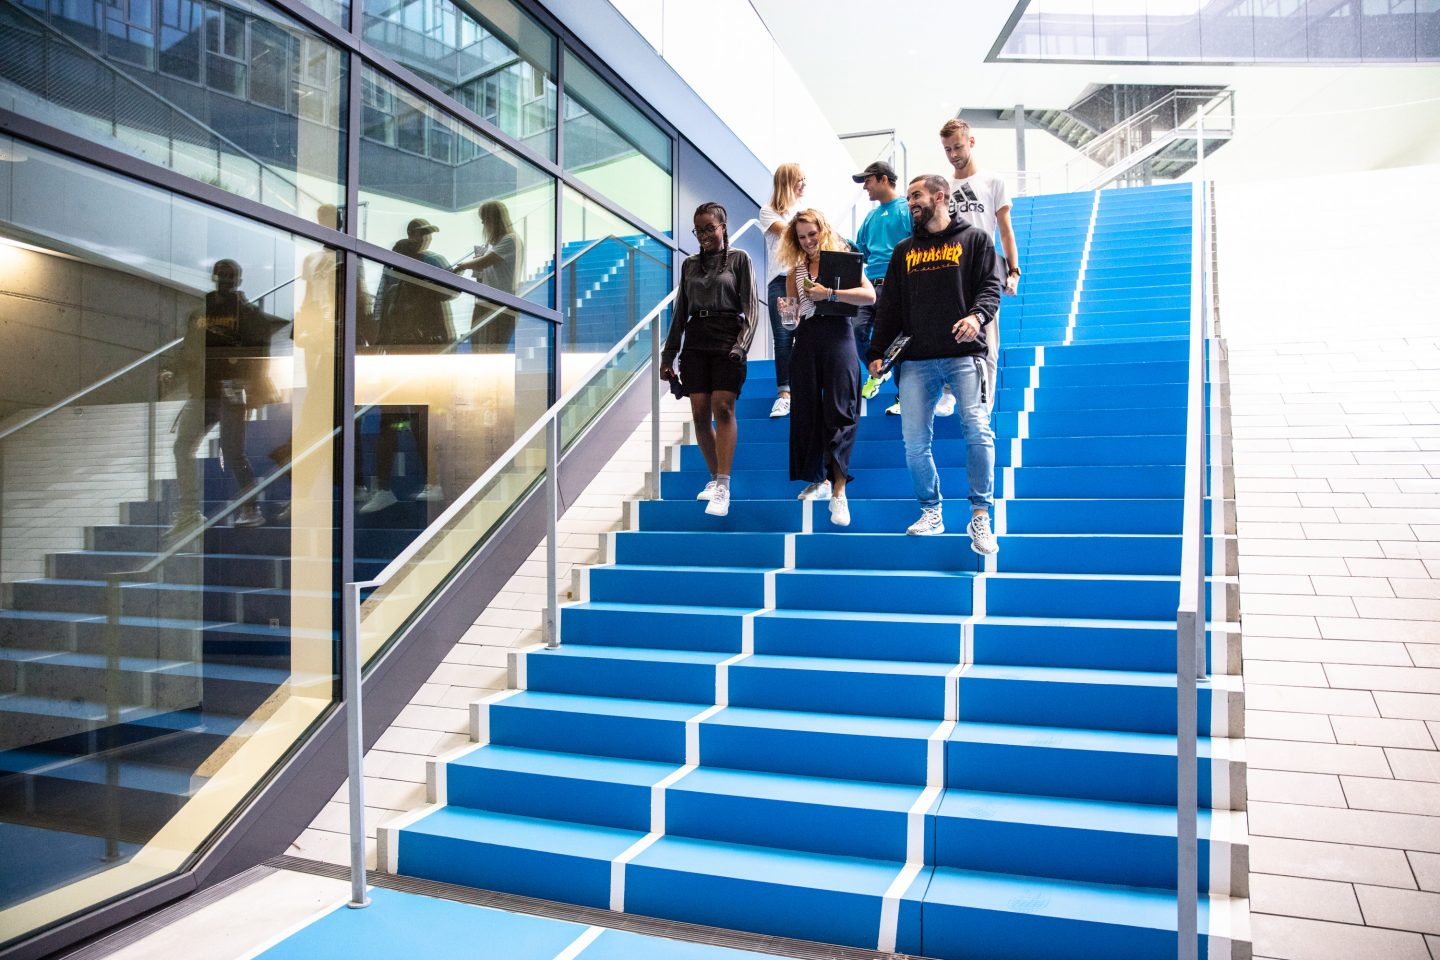 adidas employees at MyArena walking down staircase for walking meetings showing the workplace culture at adidas with collaboration